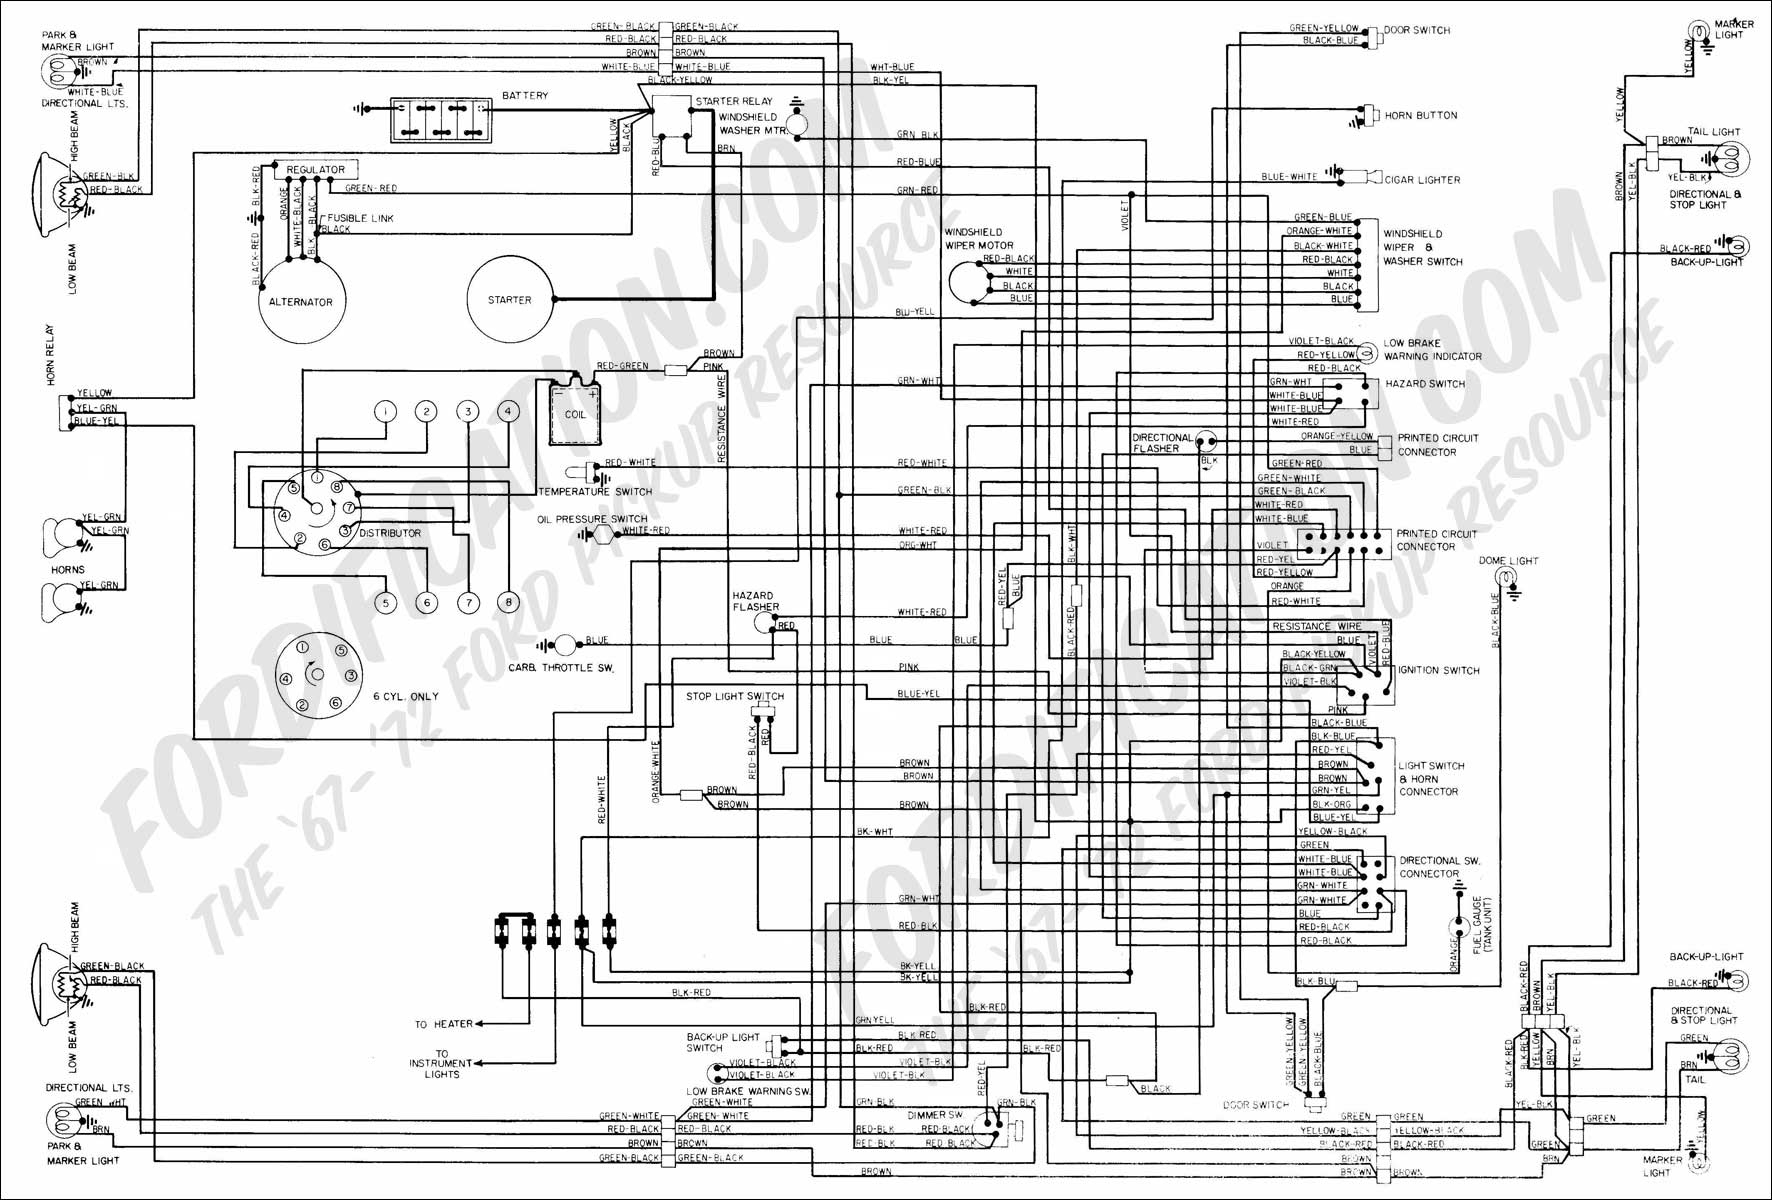 82 F150 Wiring Diagram | Wiring Diagram - Ford F250 Wiring Diagram For Trailer Lights